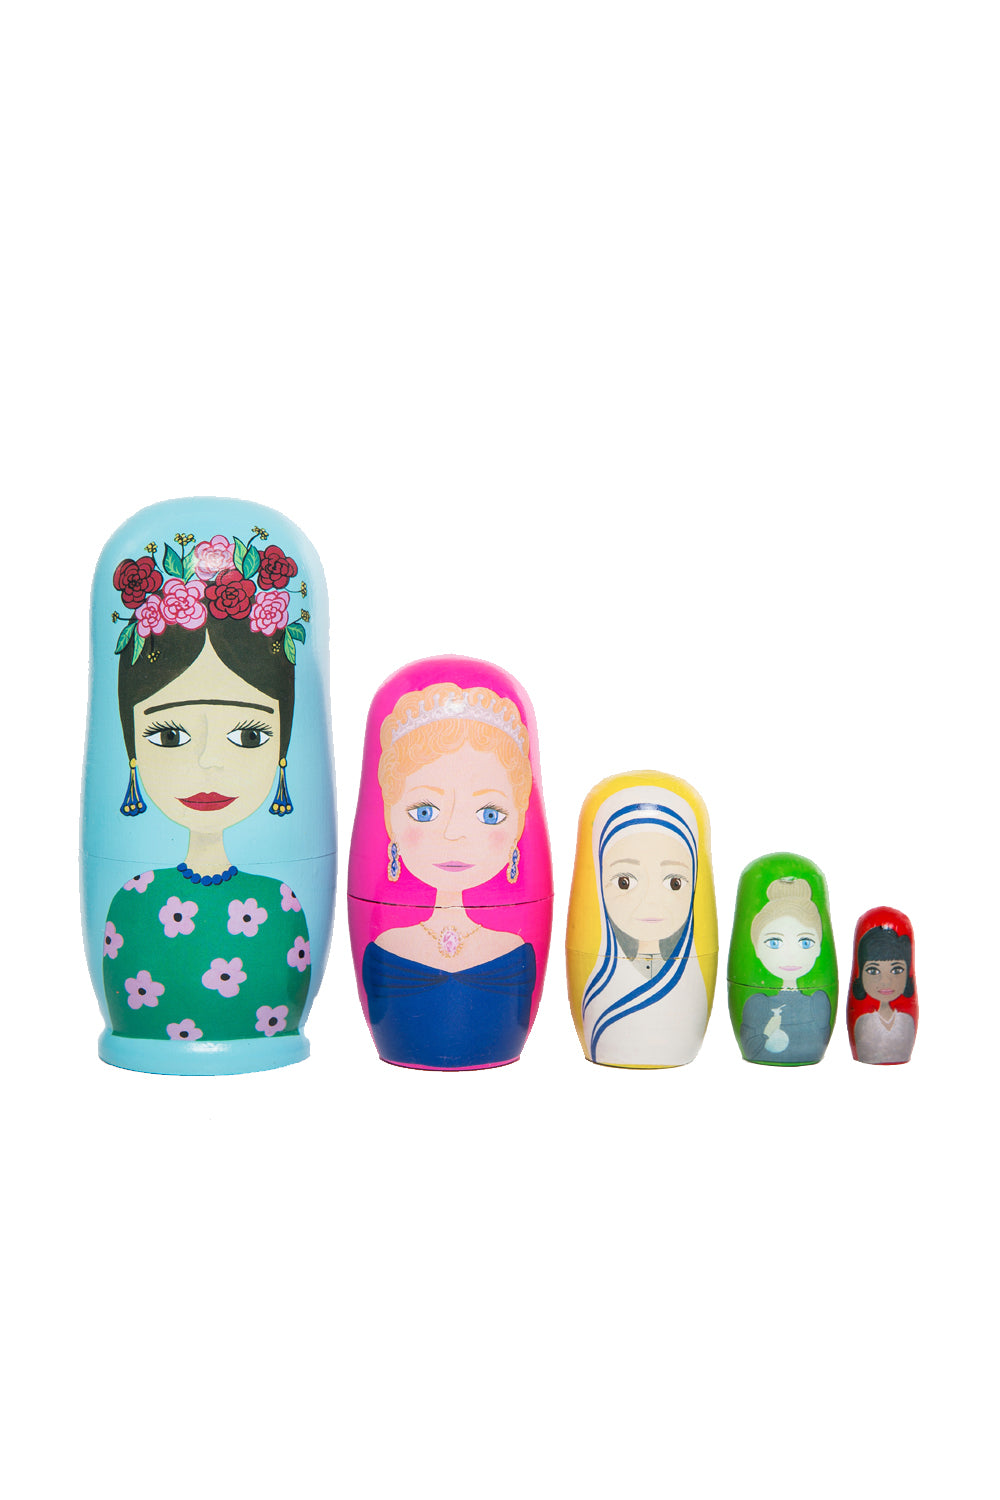 Decorative nesting dolls | Inspirational Women | Marmalade Lion